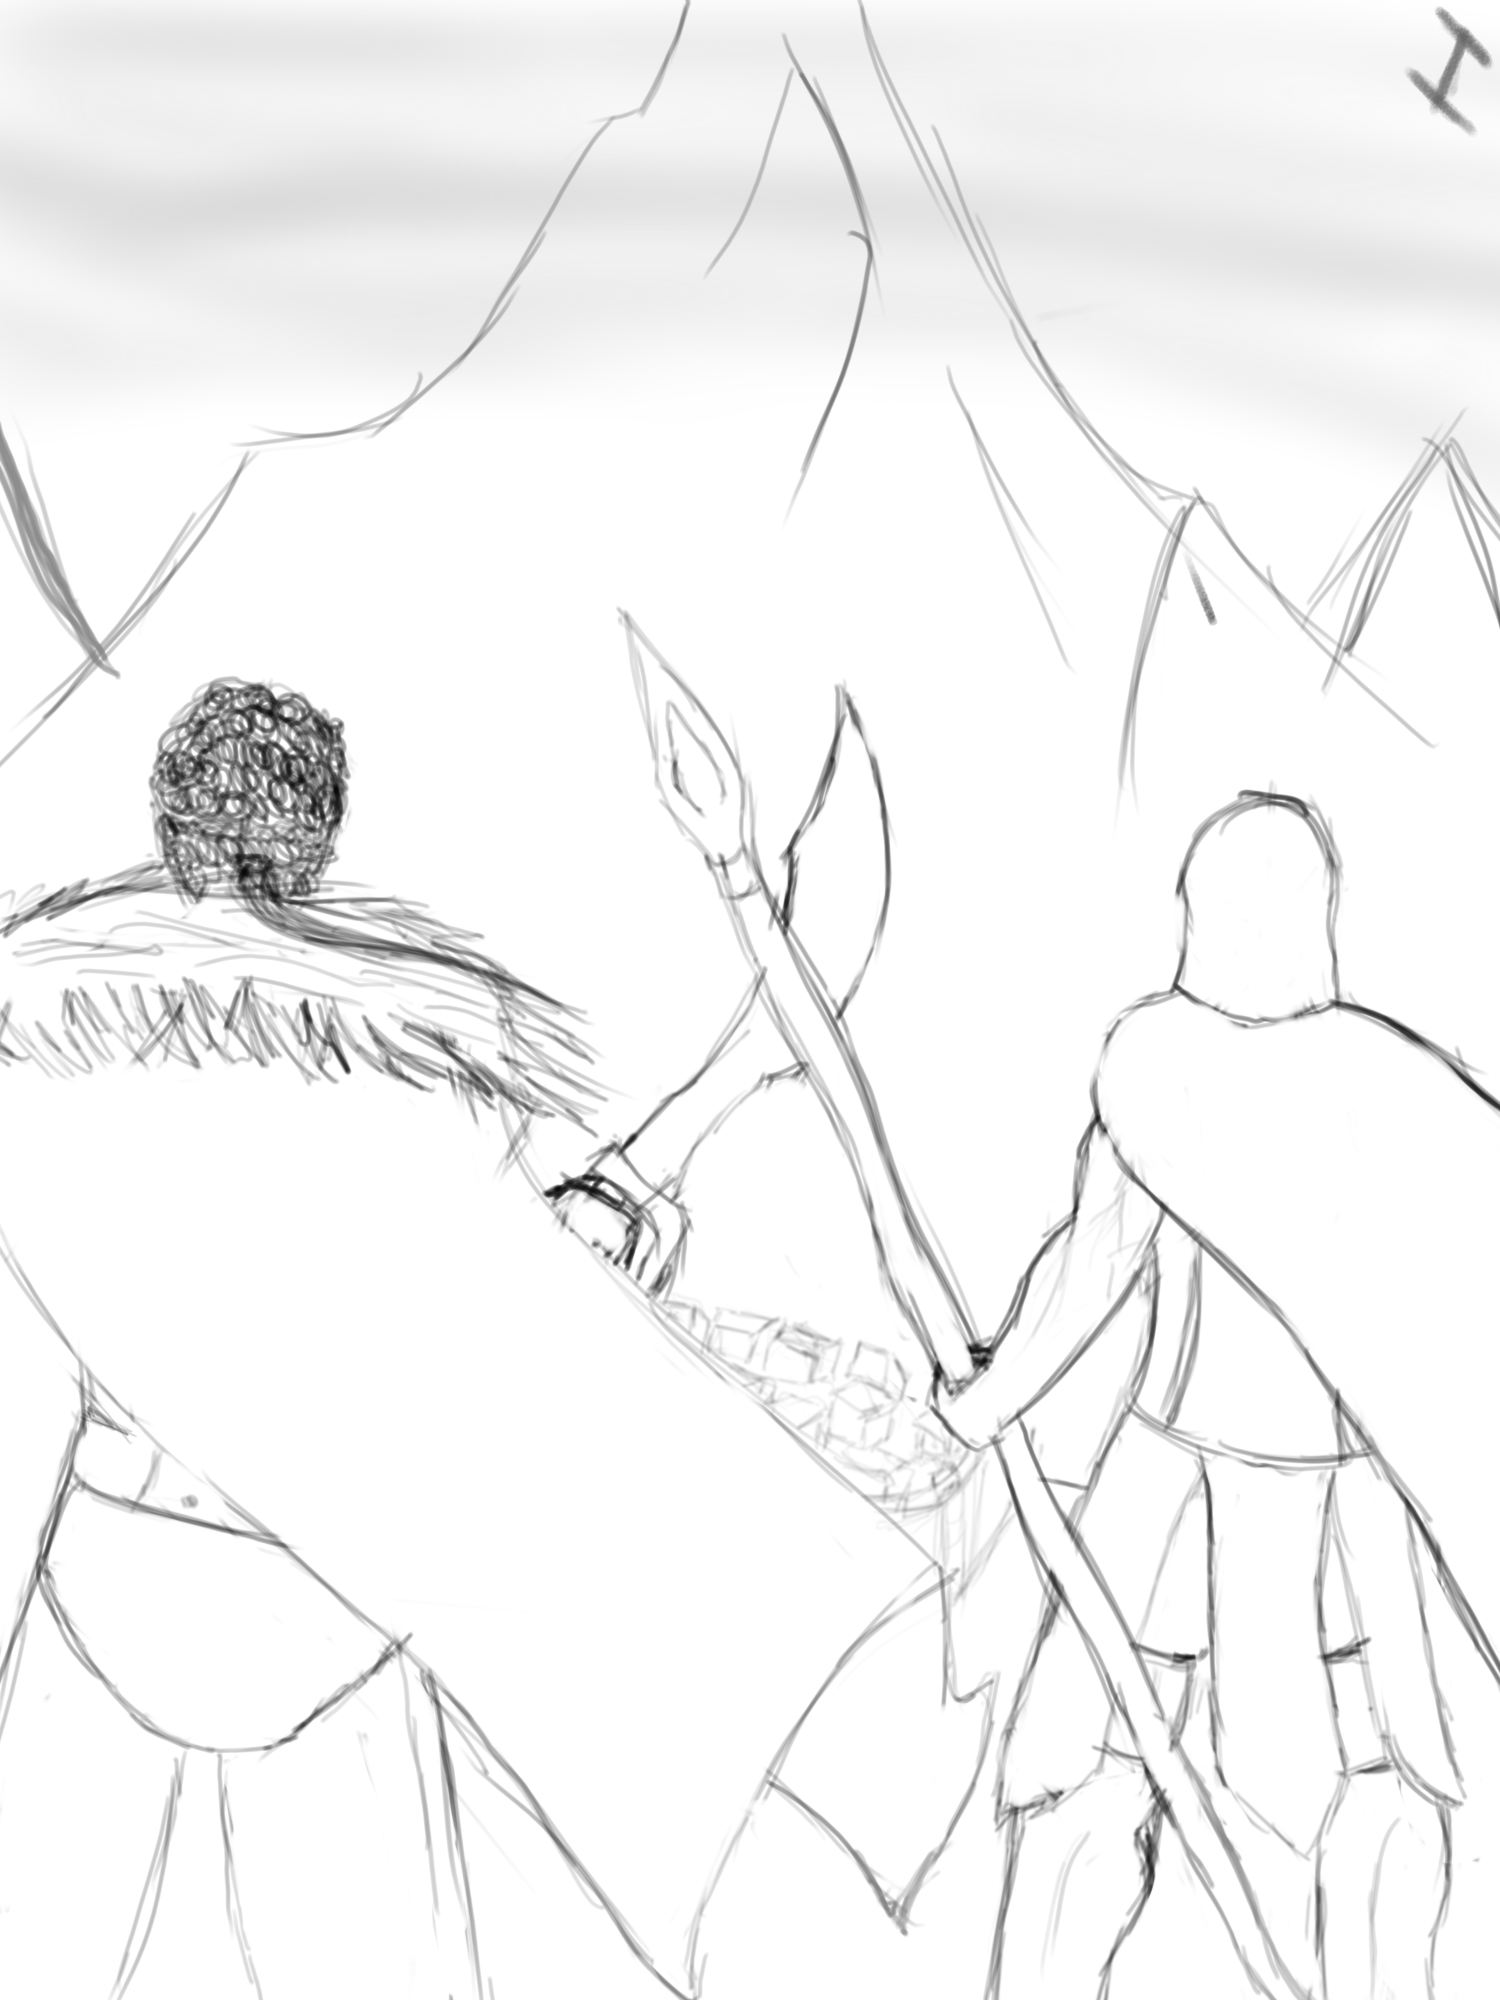 pantheon and his friend with the mt.targon dream